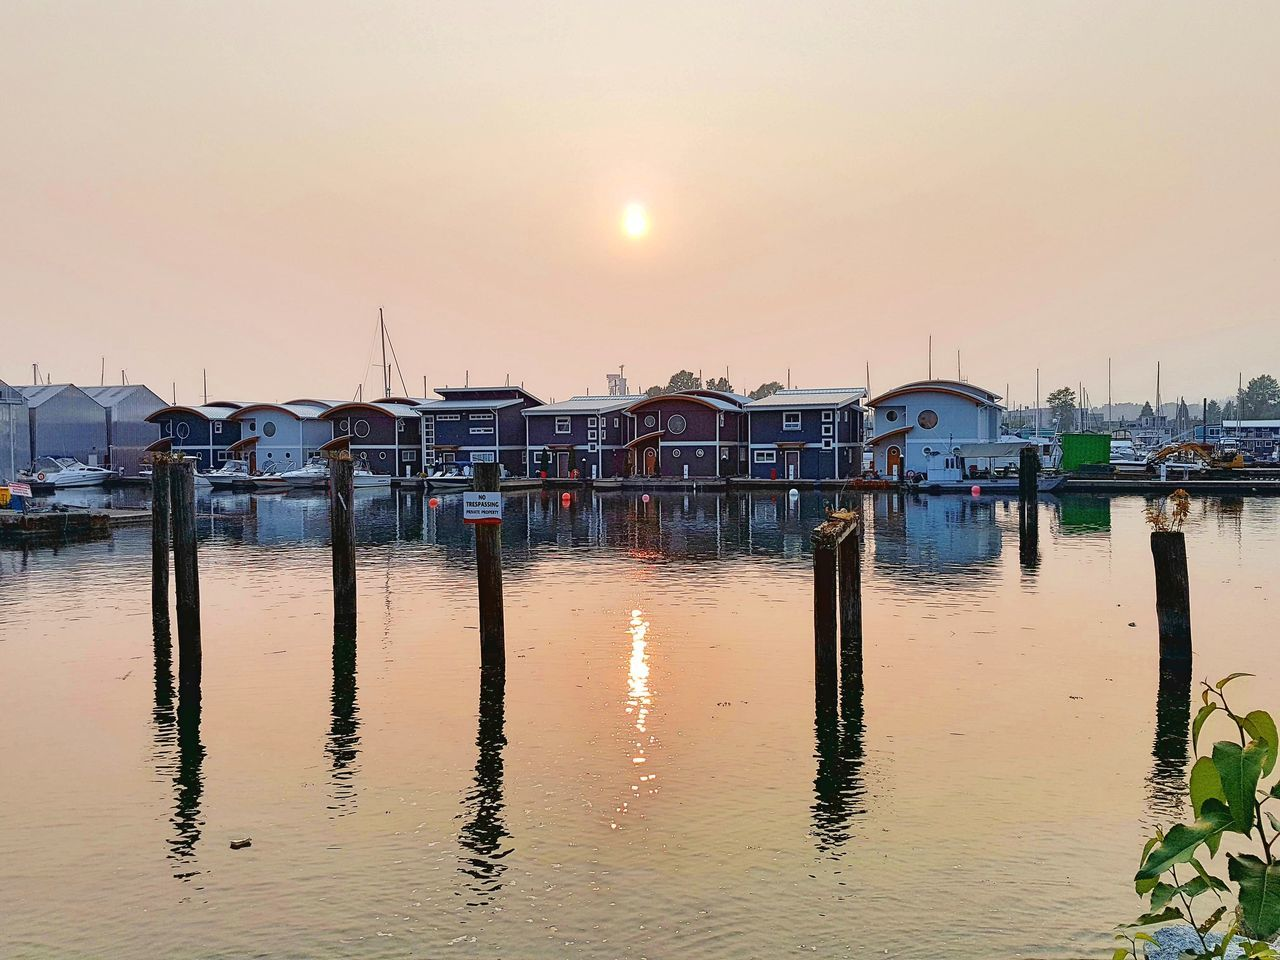 water, reflection, sunset, nautical vessel, moored, built structure, nature, outdoors, harbor, mode of transport, sea, sky, sun, waterfront, wooden post, tranquility, beauty in nature, transportation, architecture, tranquil scene, sunlight, stilt house, no people, scenics, travel destinations, building exterior, clear sky, day